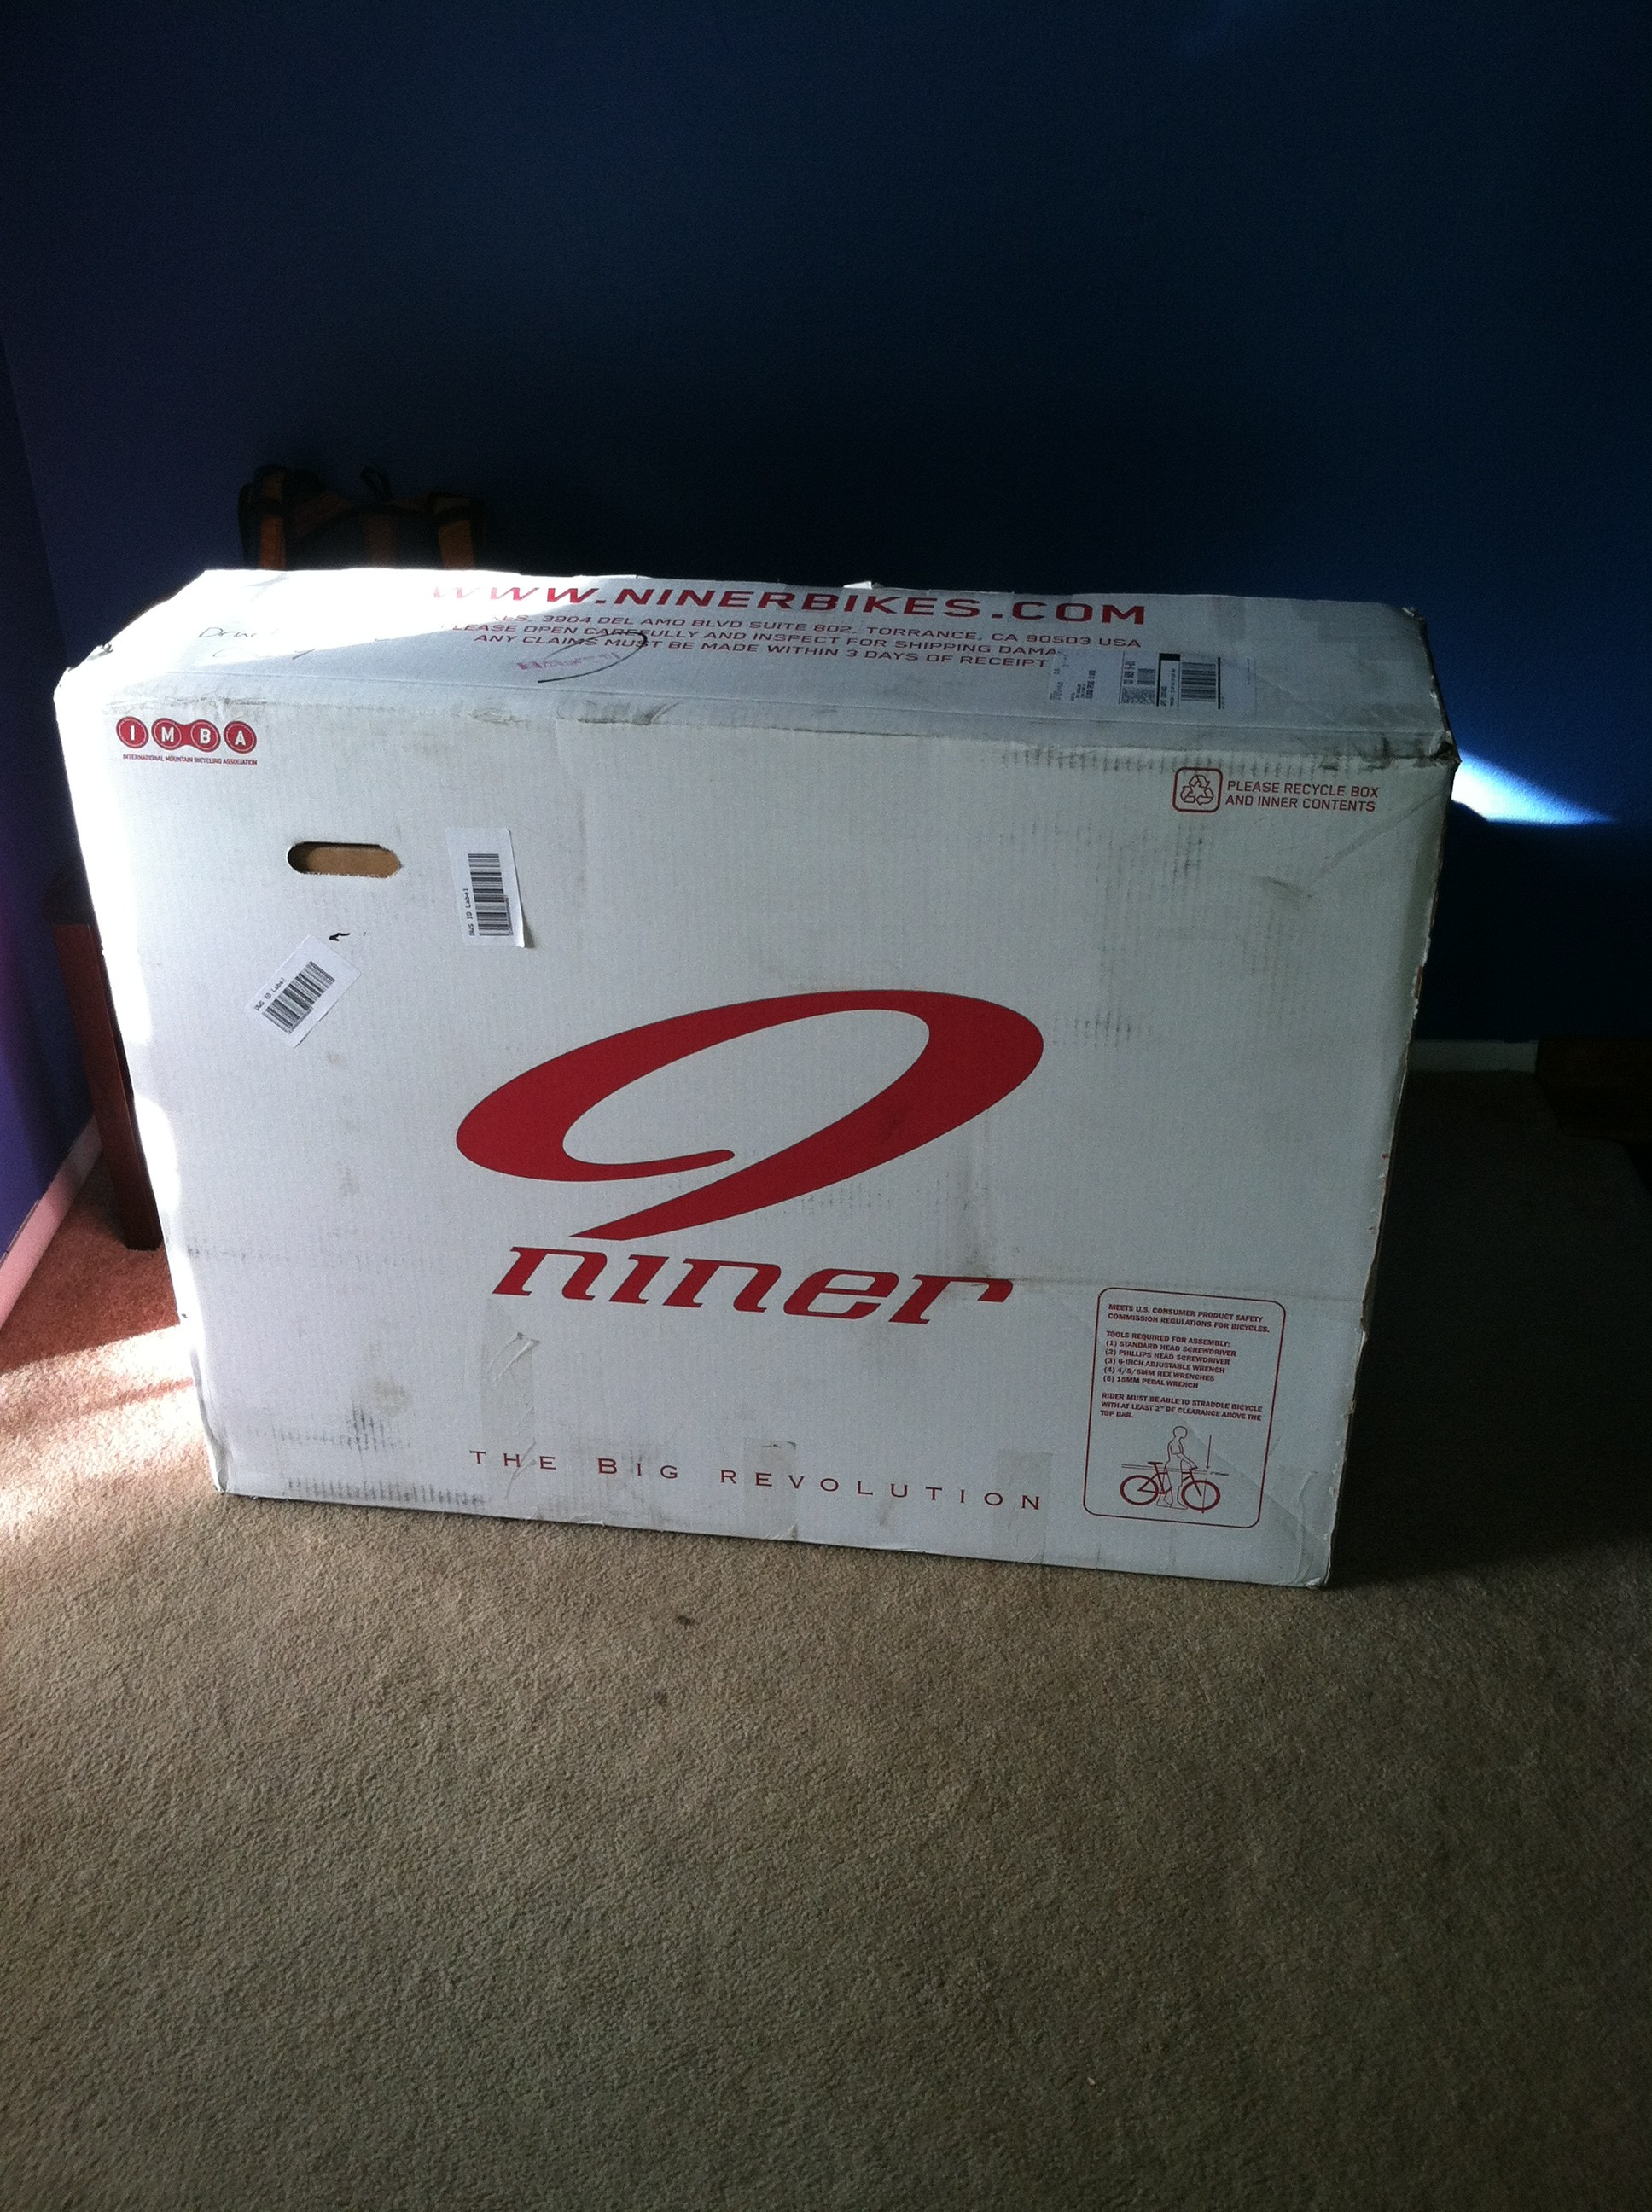 I love it when boxes like this one show up on my doorstep.